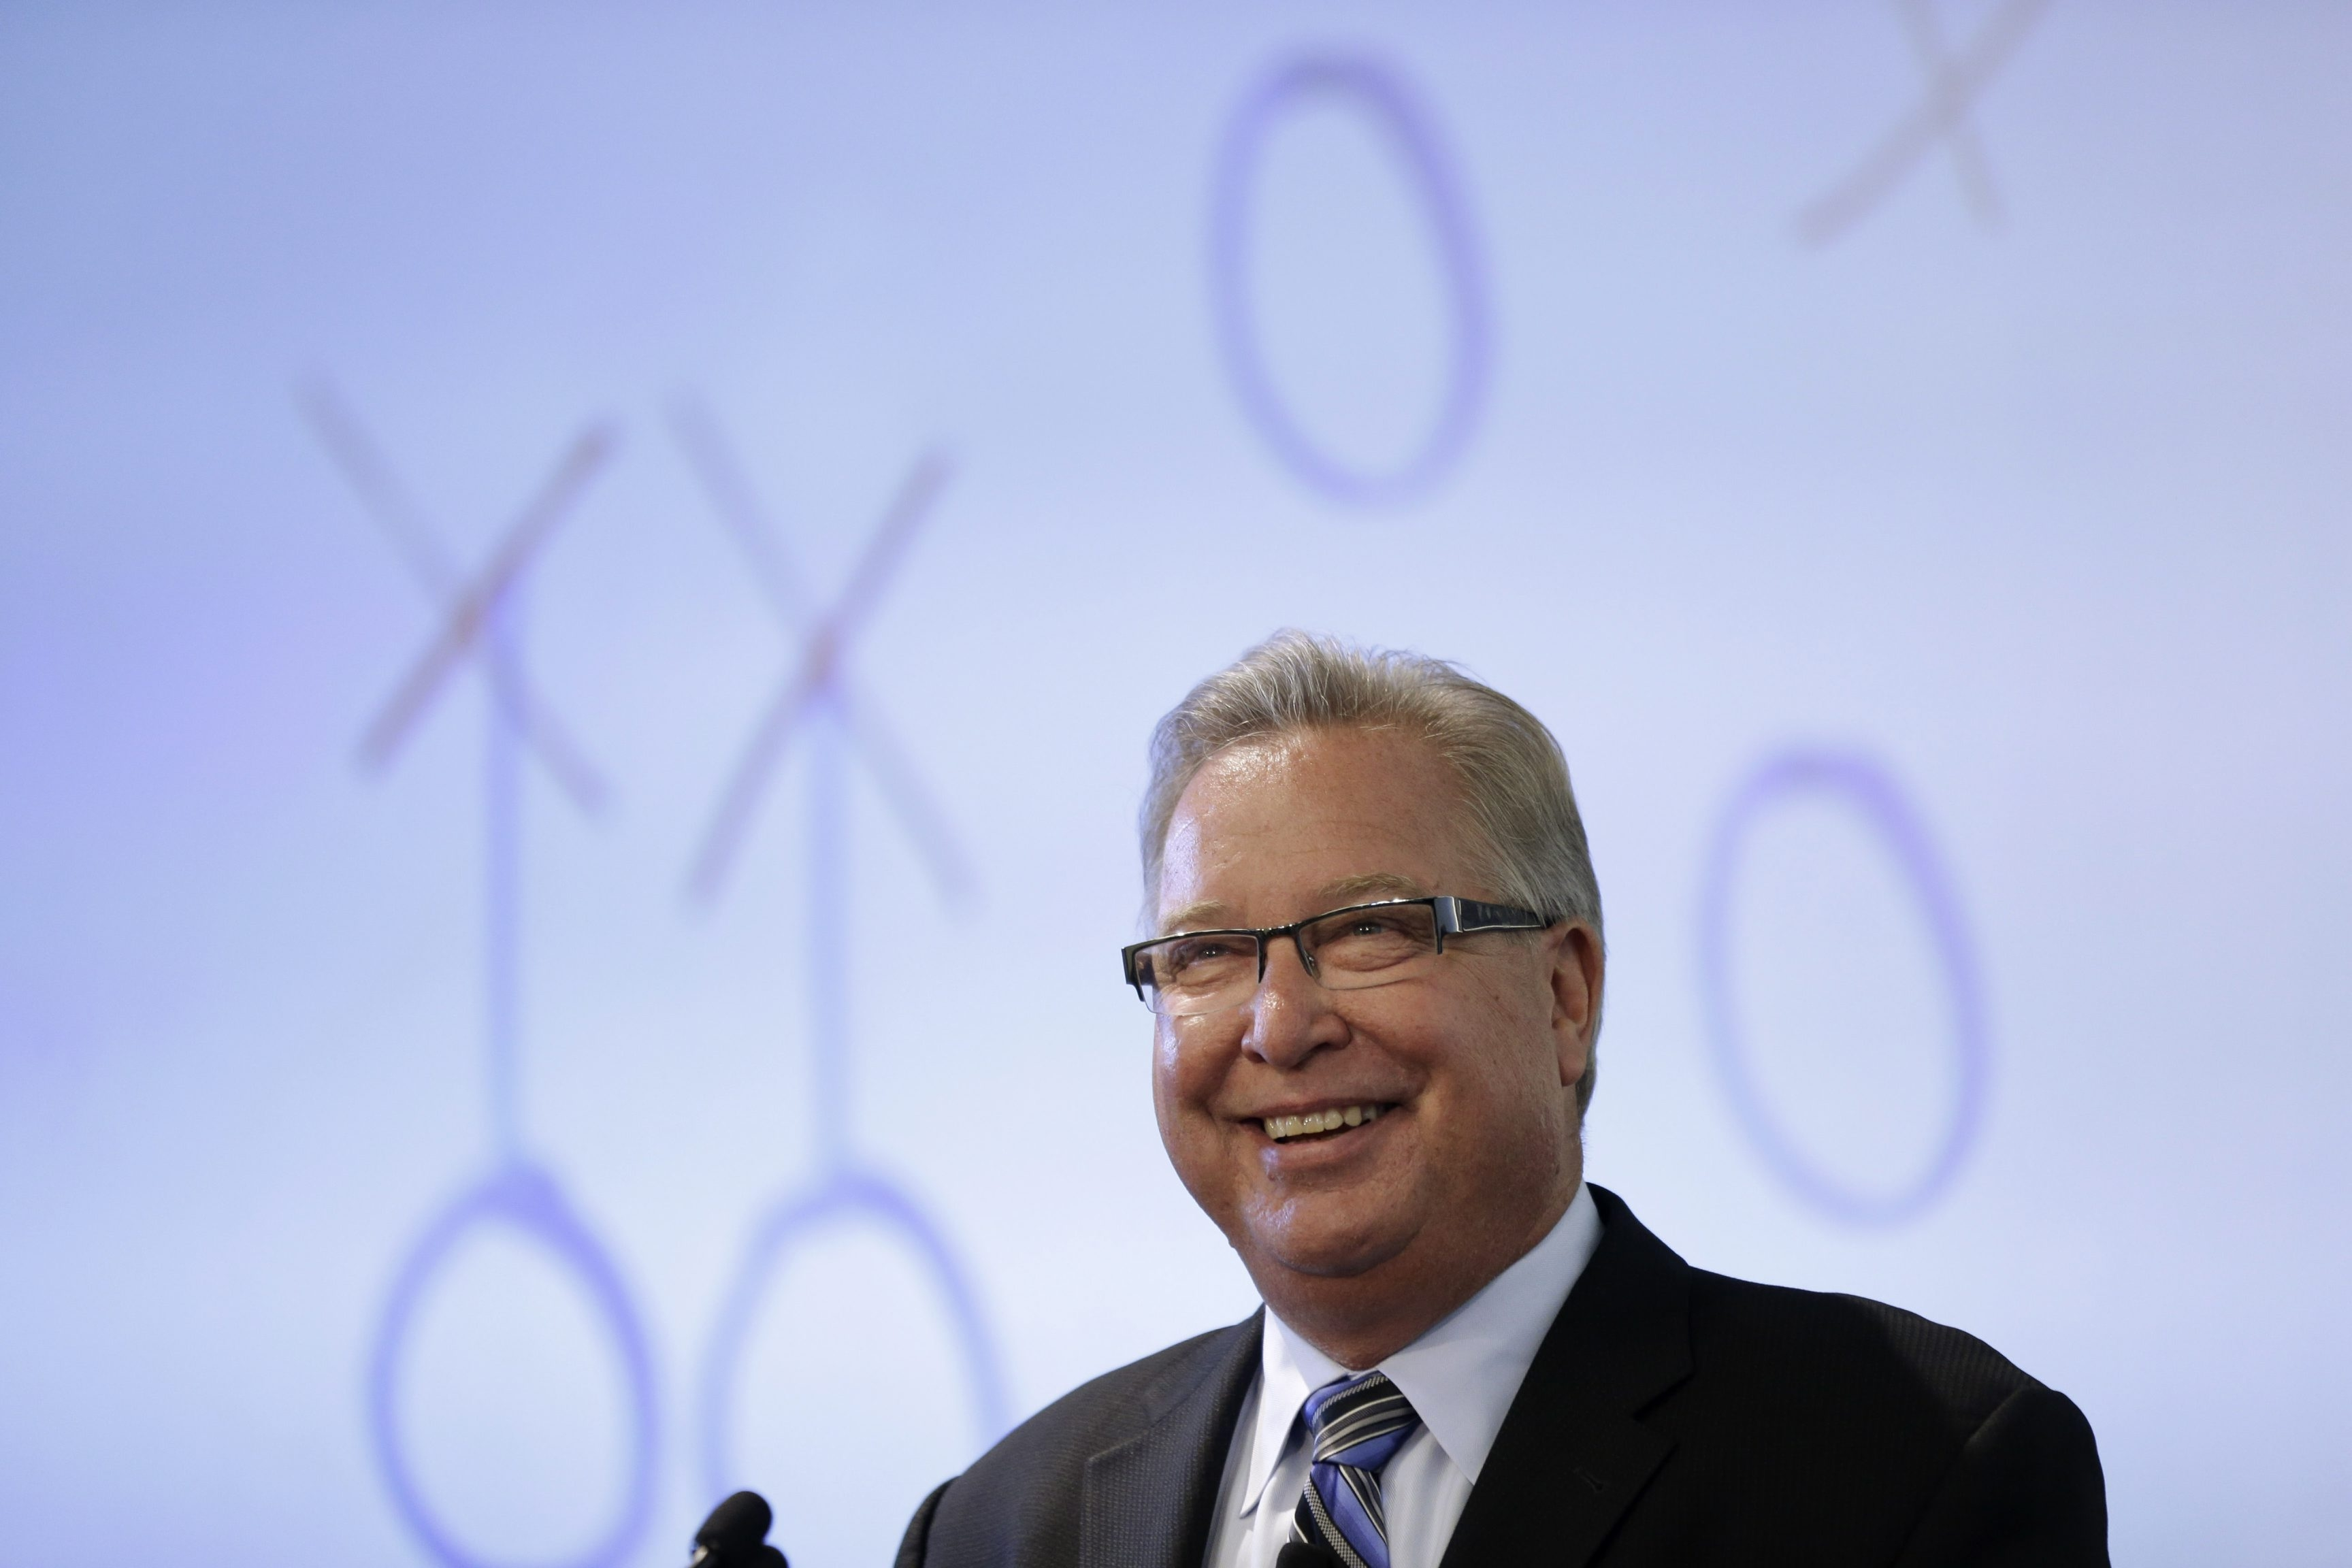 Former Philadelphia Eagle, Philadelphia Soul owner, and ESPN analyst Ron Jaworski speaks during an event discussing impact of sports, hosted by the Rothman Institute, Wednesday, May 22, 2013, in Philadelphia. (AP Photo/Matt Rourke)